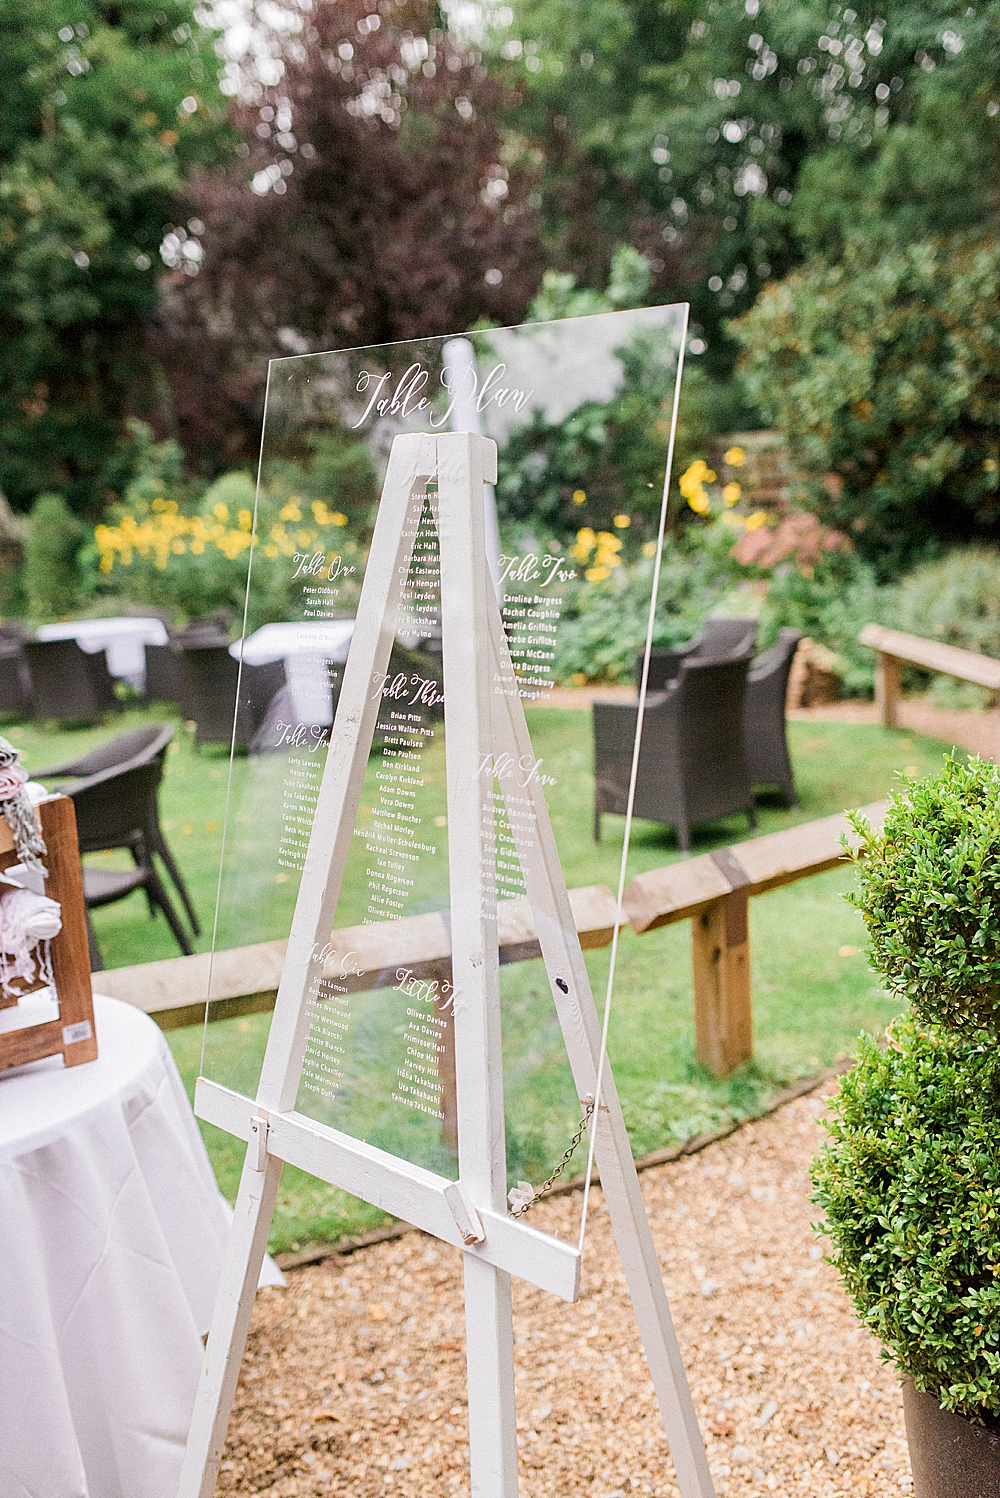 perspex seating plan with calligraphy